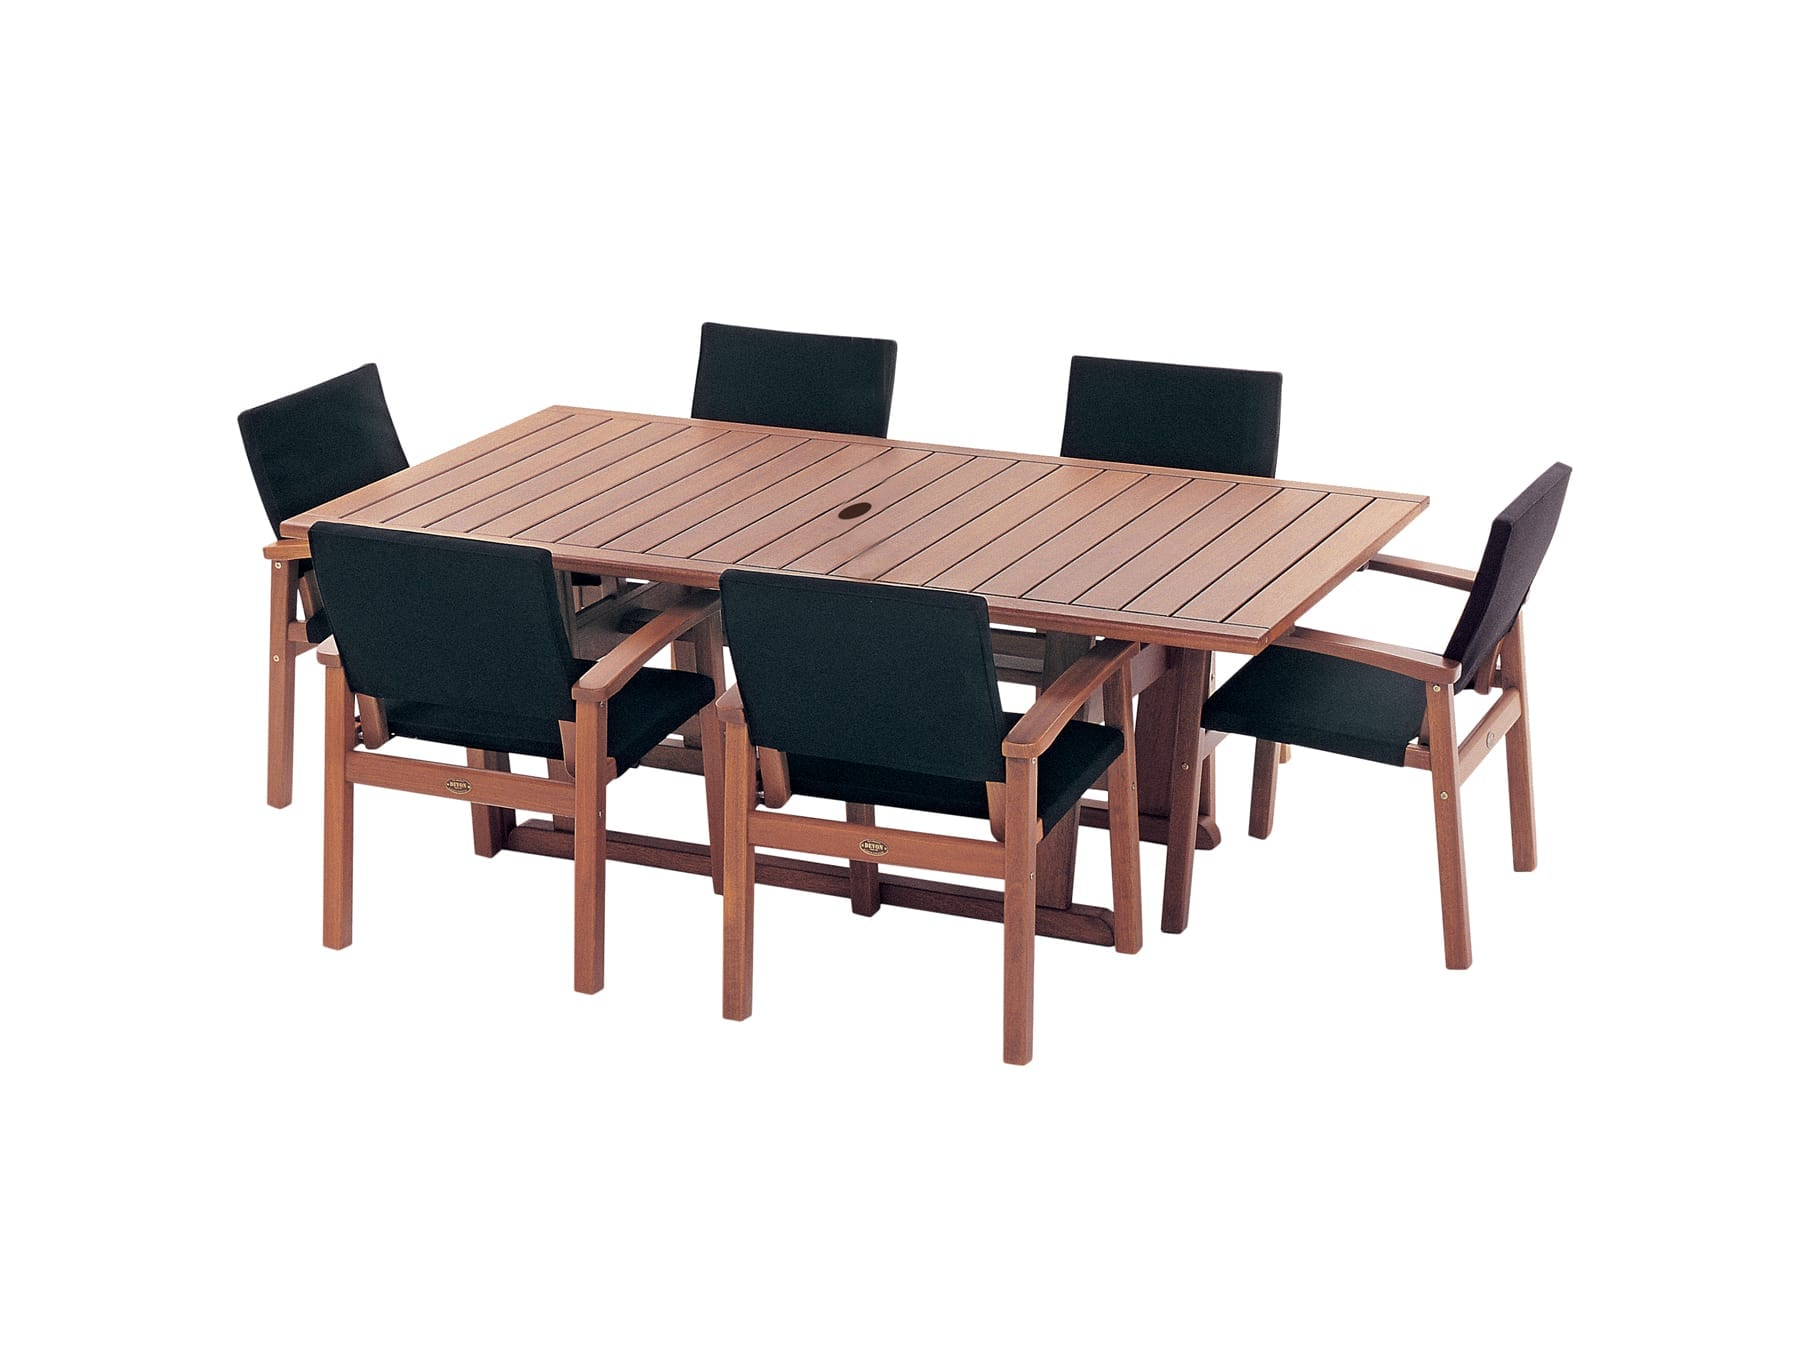 Devon outdoor furniture auckland nz modern patio outdoor for Outdoor furniture auckland